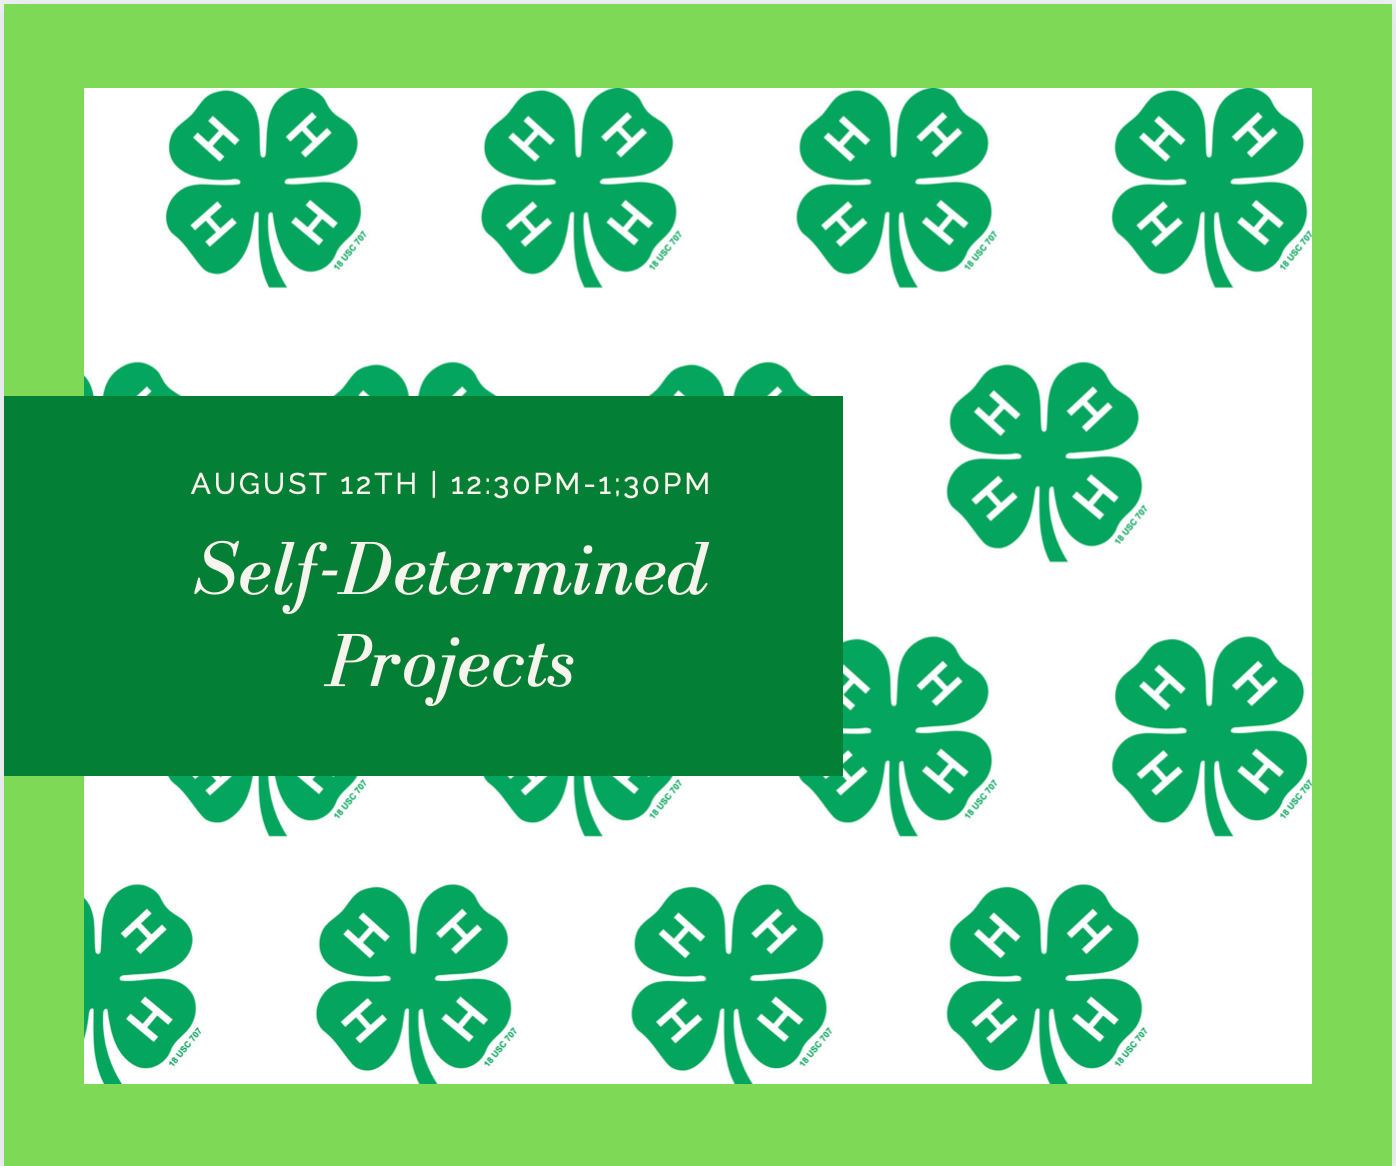 self determined projects august 12th 12:30-1:30 p.m. in front of clovers